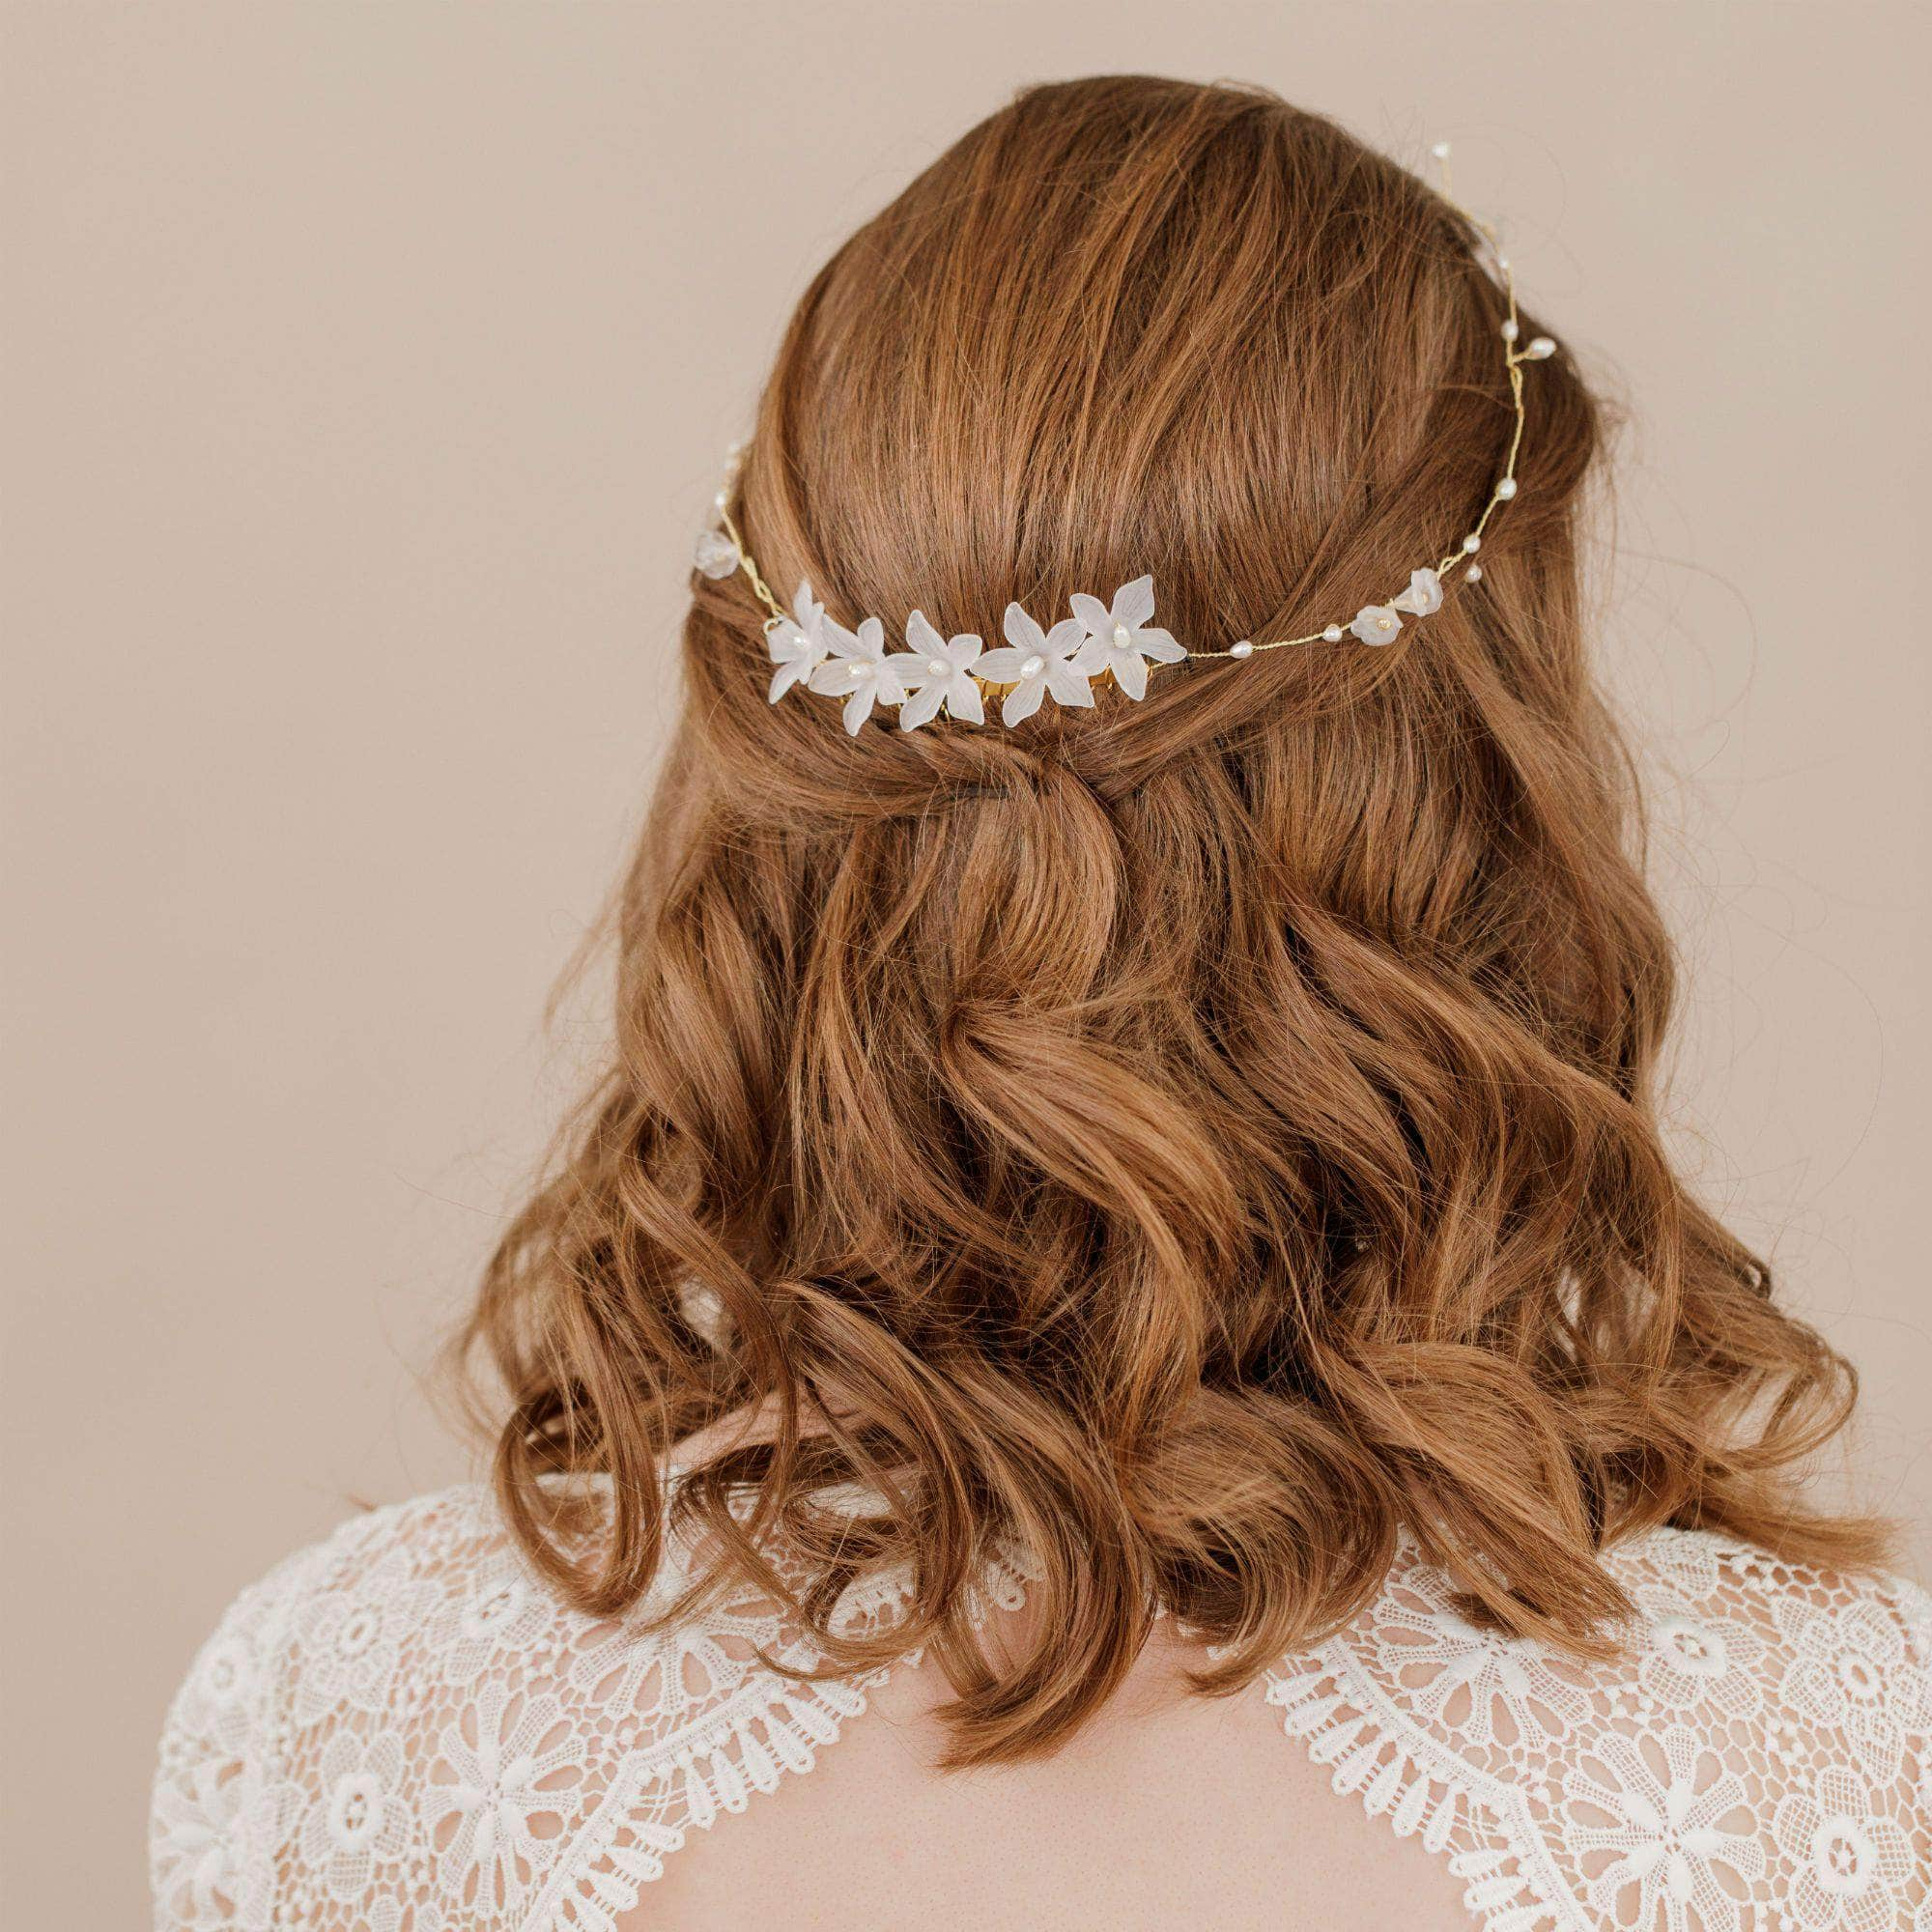 Delicate flower and freshwater pearl hair piece